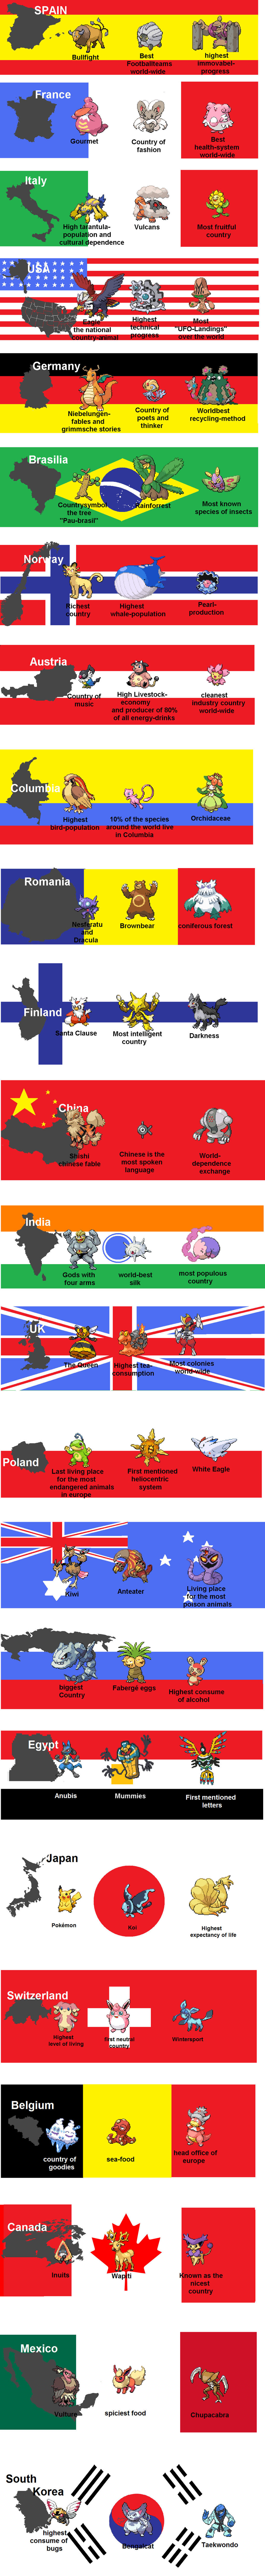 A Country in 3 Pokemons by MumbleCat